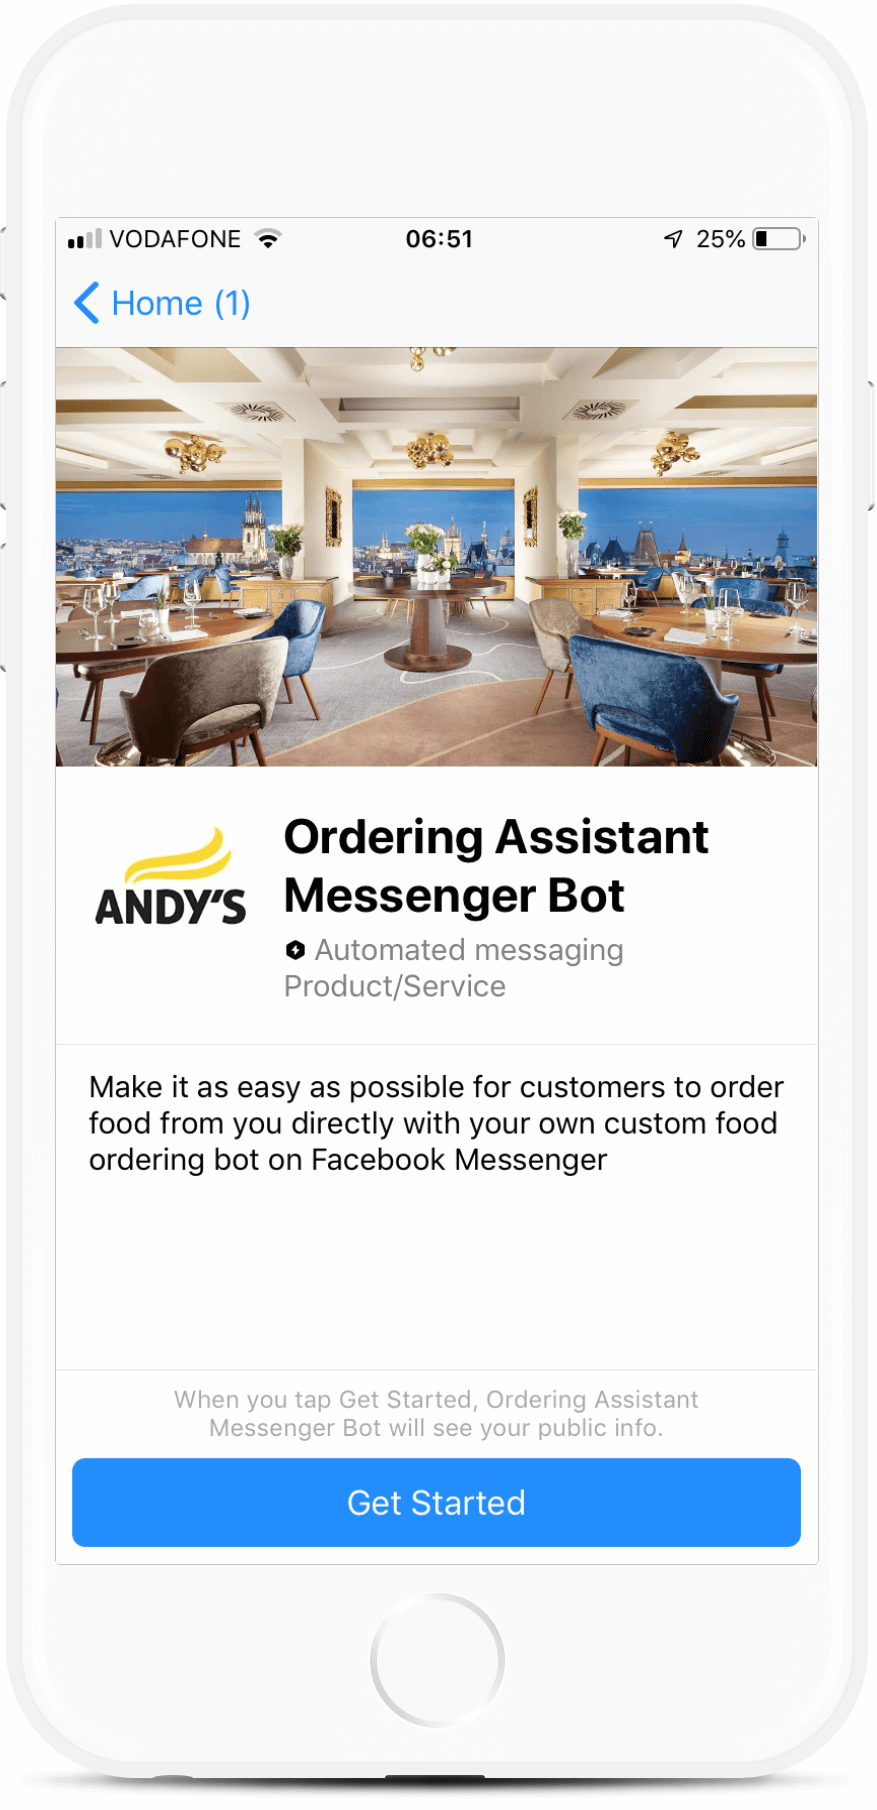 Ordering Assistant Messenger Bot for Restaurants bot screenshot